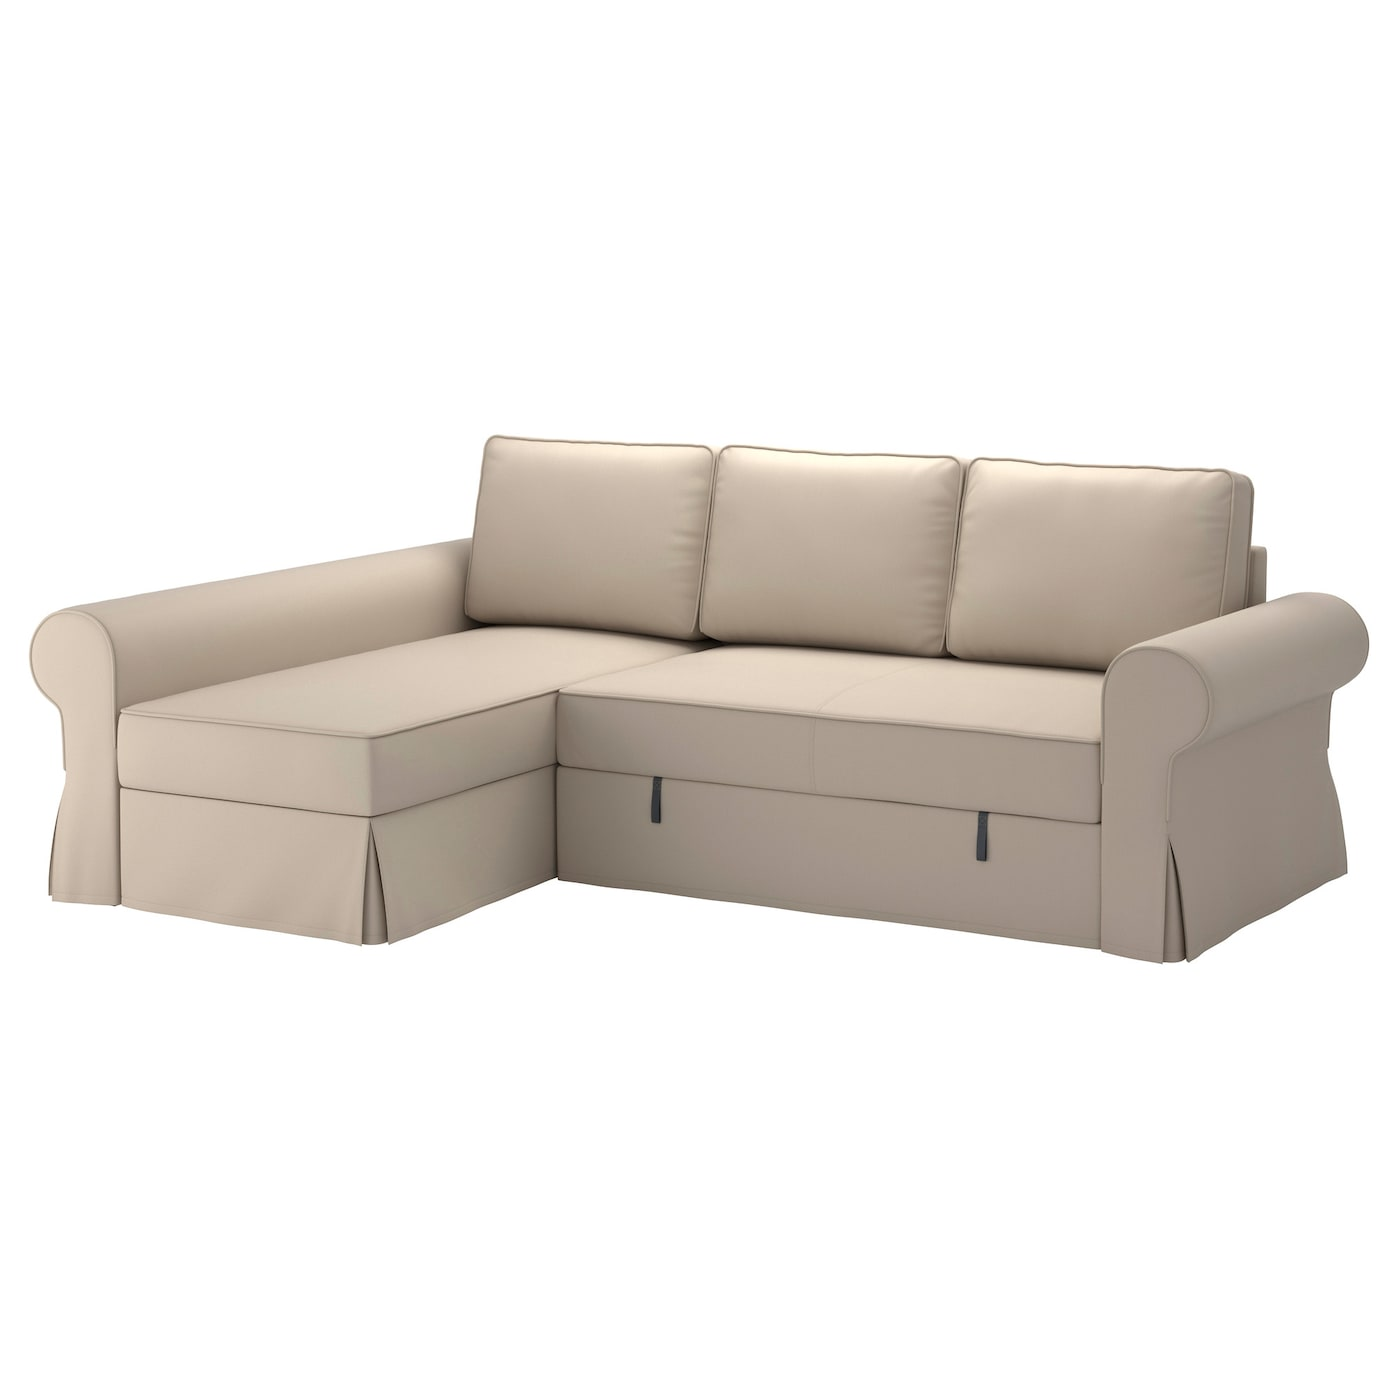 Backabro cover sofa bed with chaise longue ramna beige ikea - Chaise empilable ikea ...